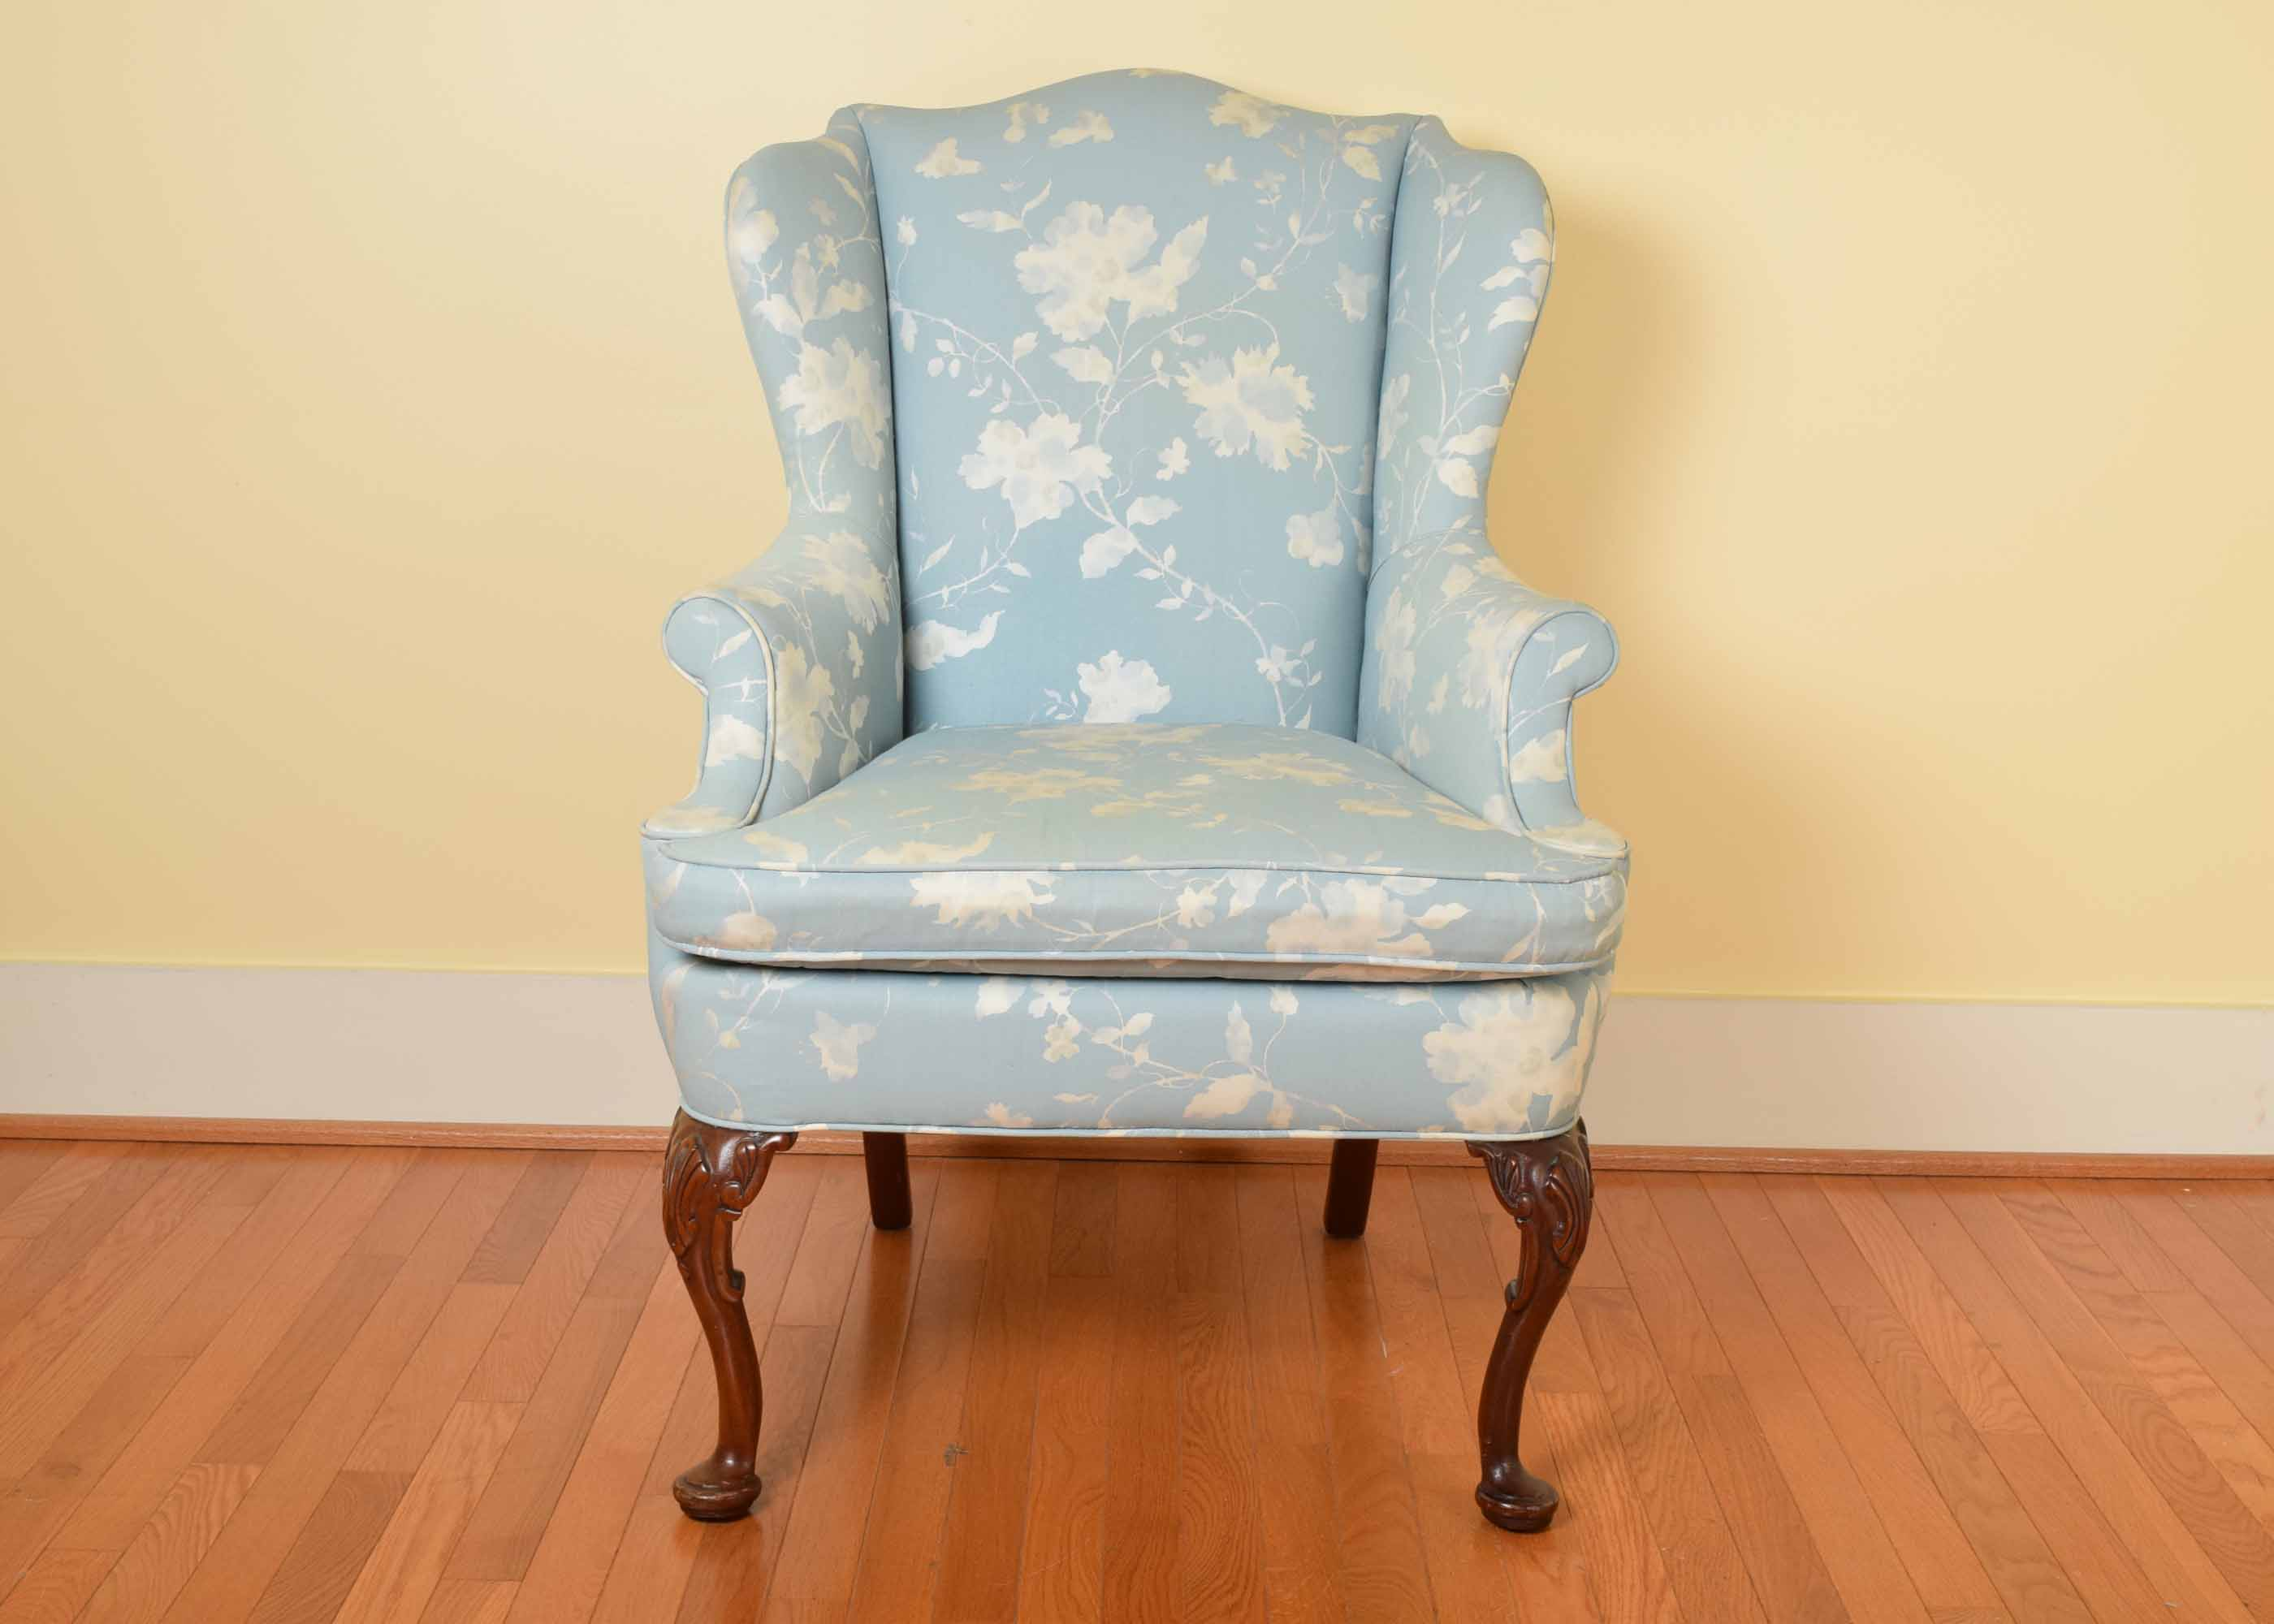 blue and white upholstered chairs how wide is a wheel chair key city queen anne style wing